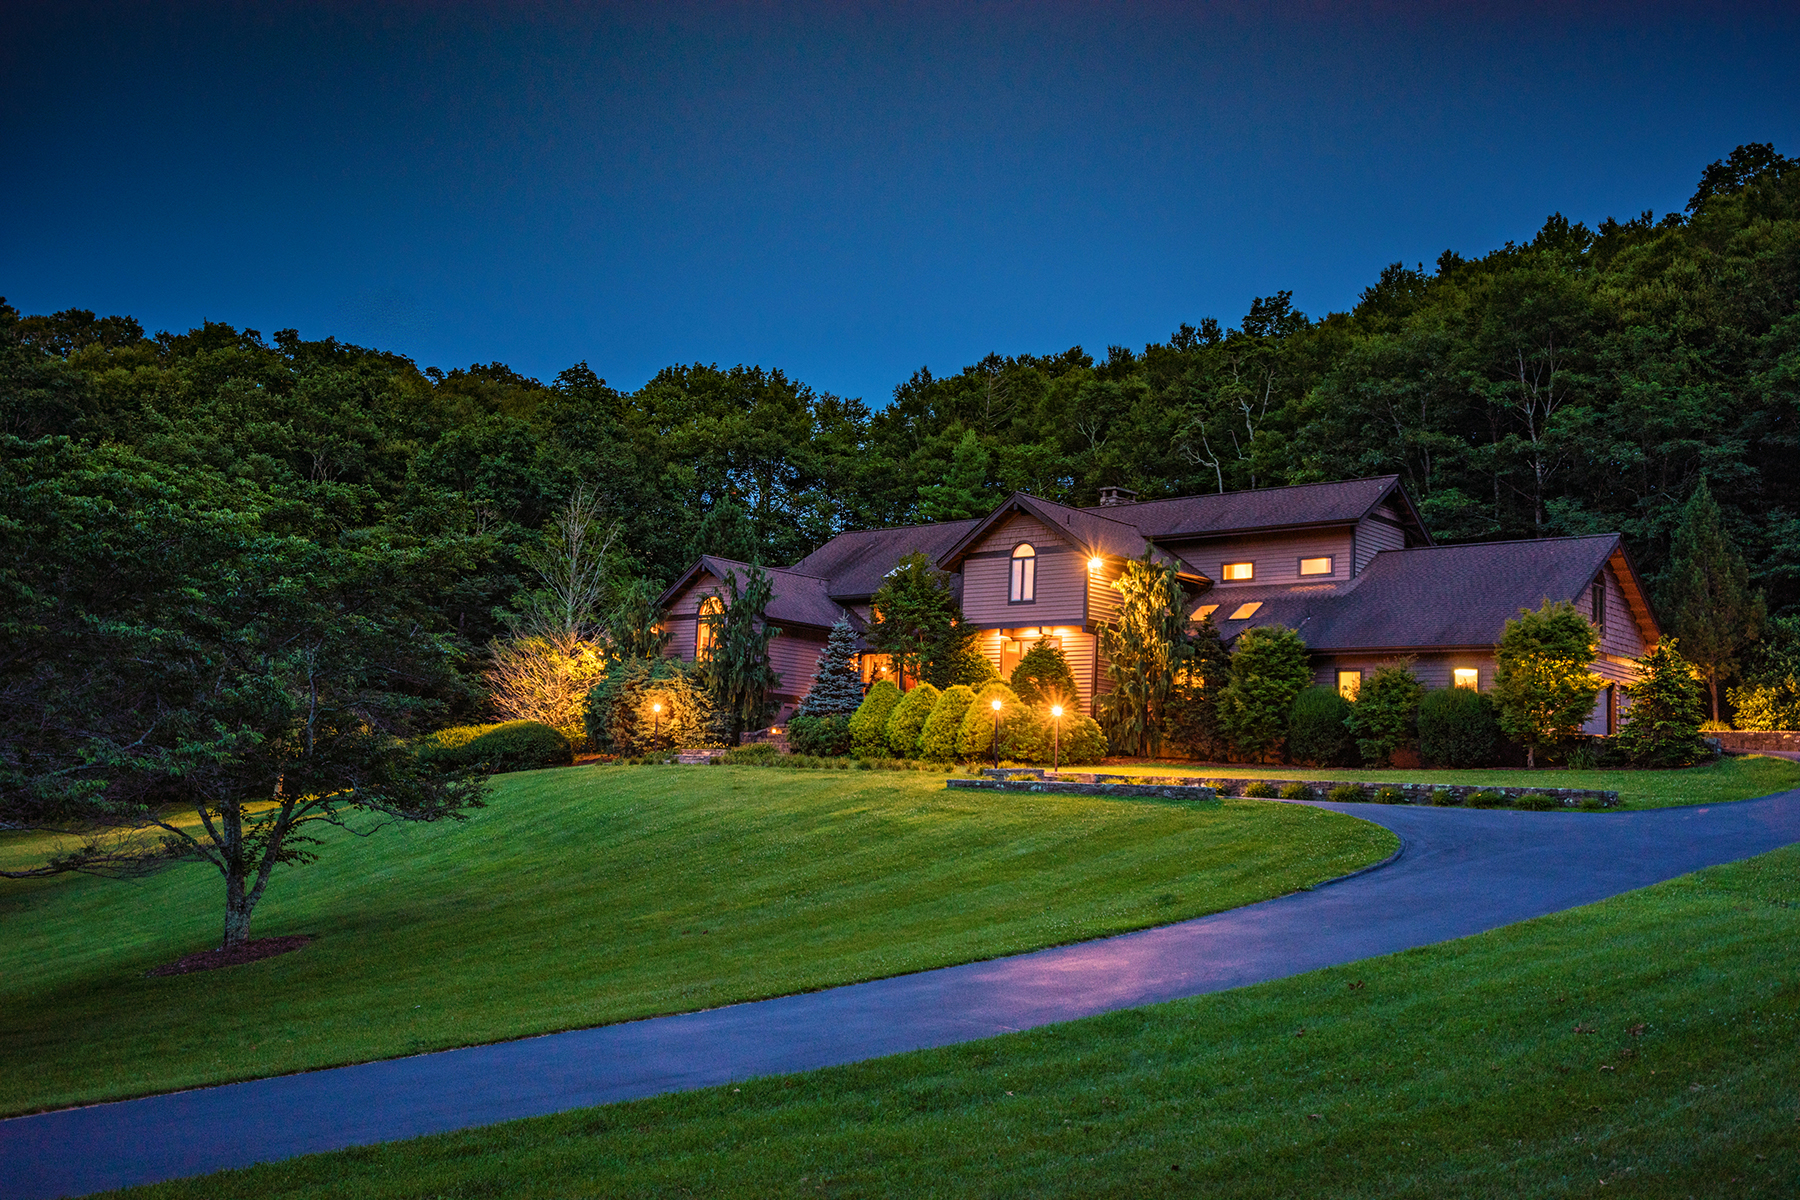 Single Family Home for Sale at BLOWING ROCK - LAUREL CHASE 251 Laurel Chase, Blowing Rock, North Carolina 28605 United States